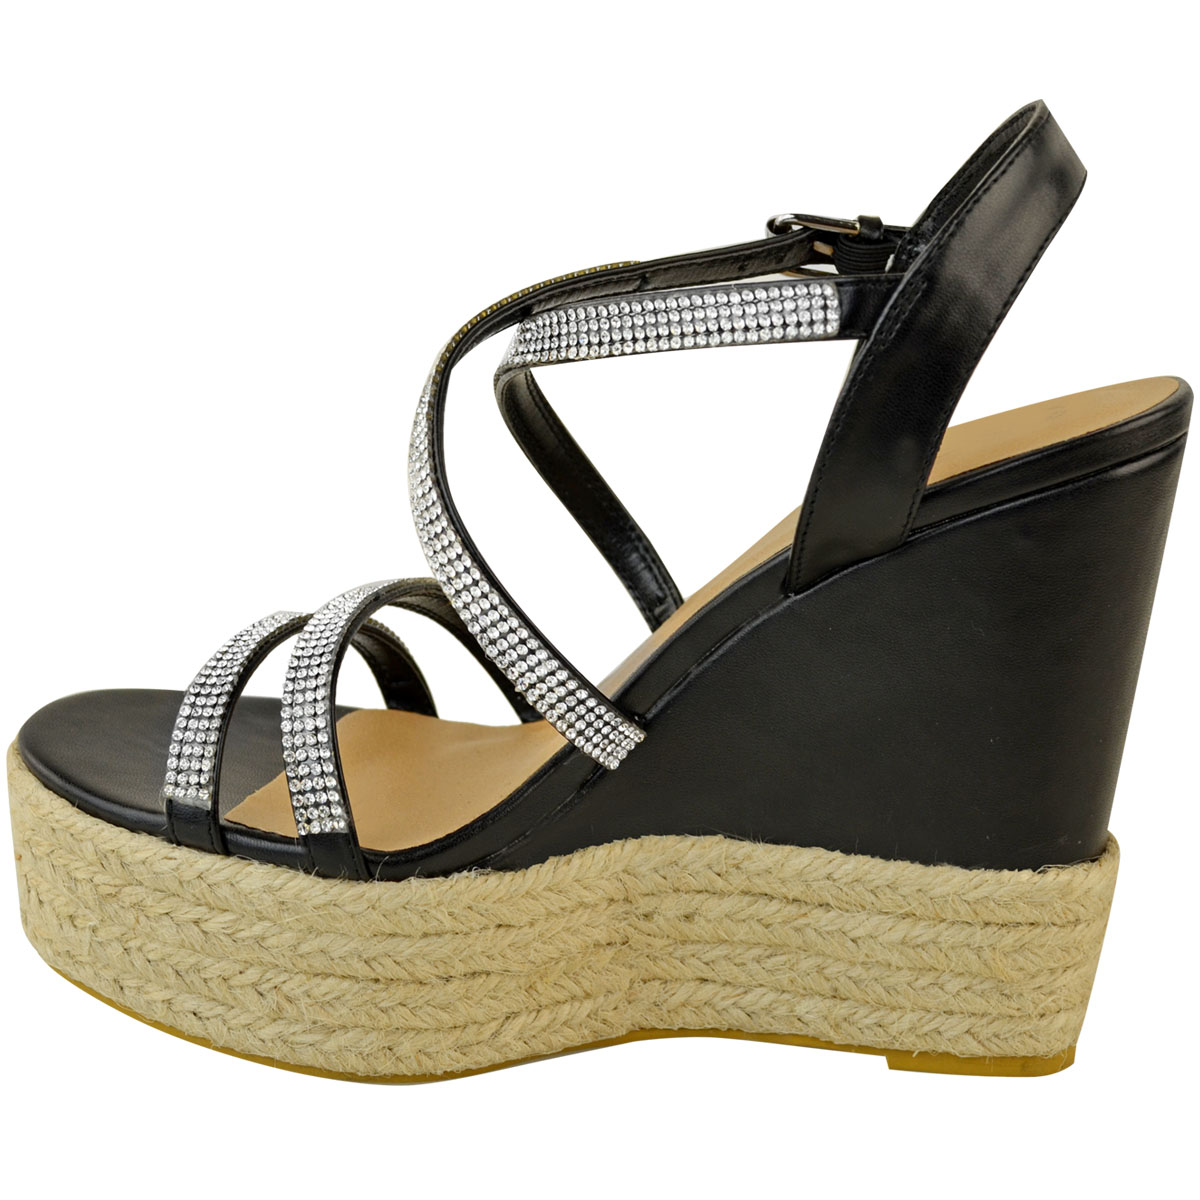 Womens-Ladies-Strappy-Diamante-Wedge-High-Heels-Sandals-Platforms-Shoes-Size-UK thumbnail 5